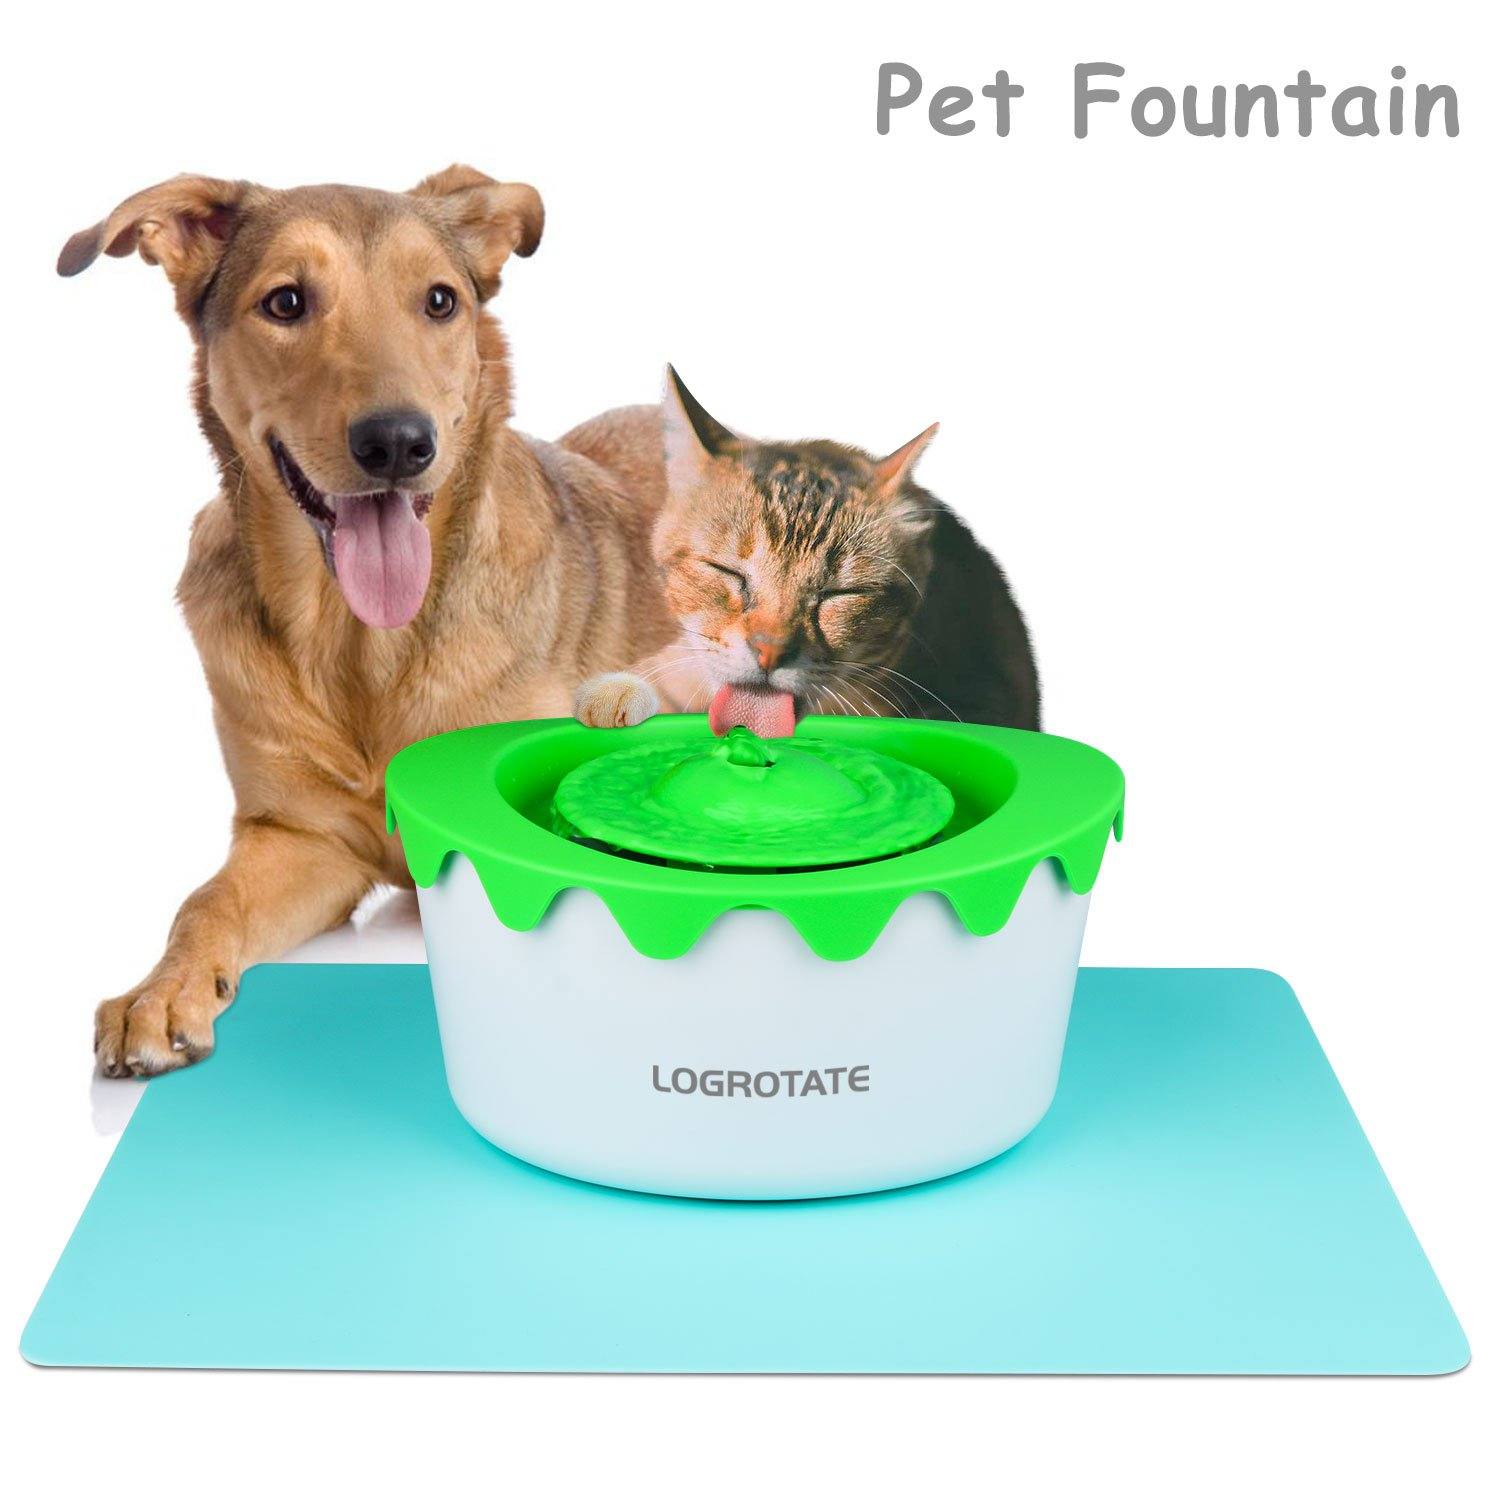 LOGROTATE Pet Fountain Automatic 1.8L Drinking Water Fountain Healthy Hygienic Cat Fountain Dispenser Dog Fountain with Charcoal Filter & Super Silent for Cat Small Dog and Animals